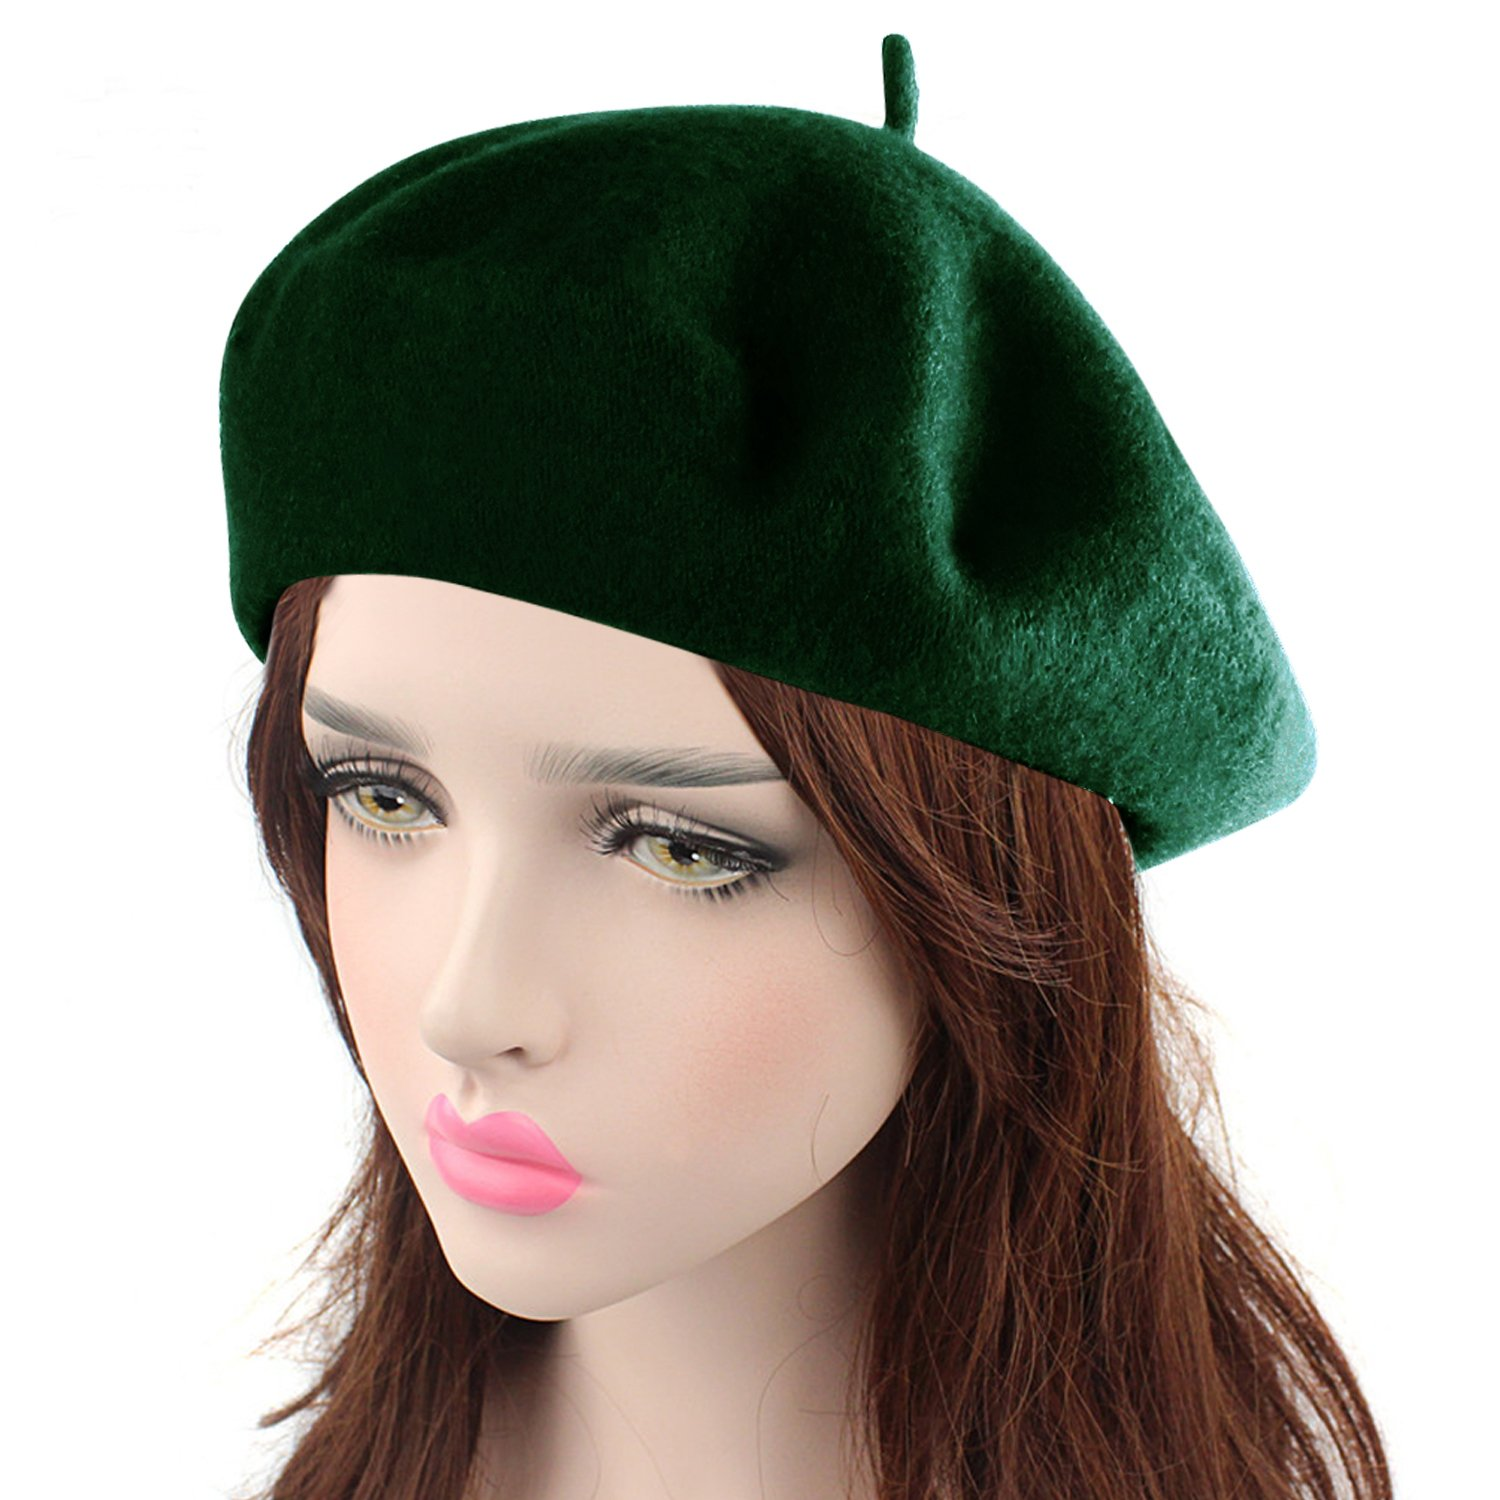 HowYouth Vintage 1940s French Style Classic Solid Color Art Wool Beret Beanie Hat Unisex Cap (Dark Green)